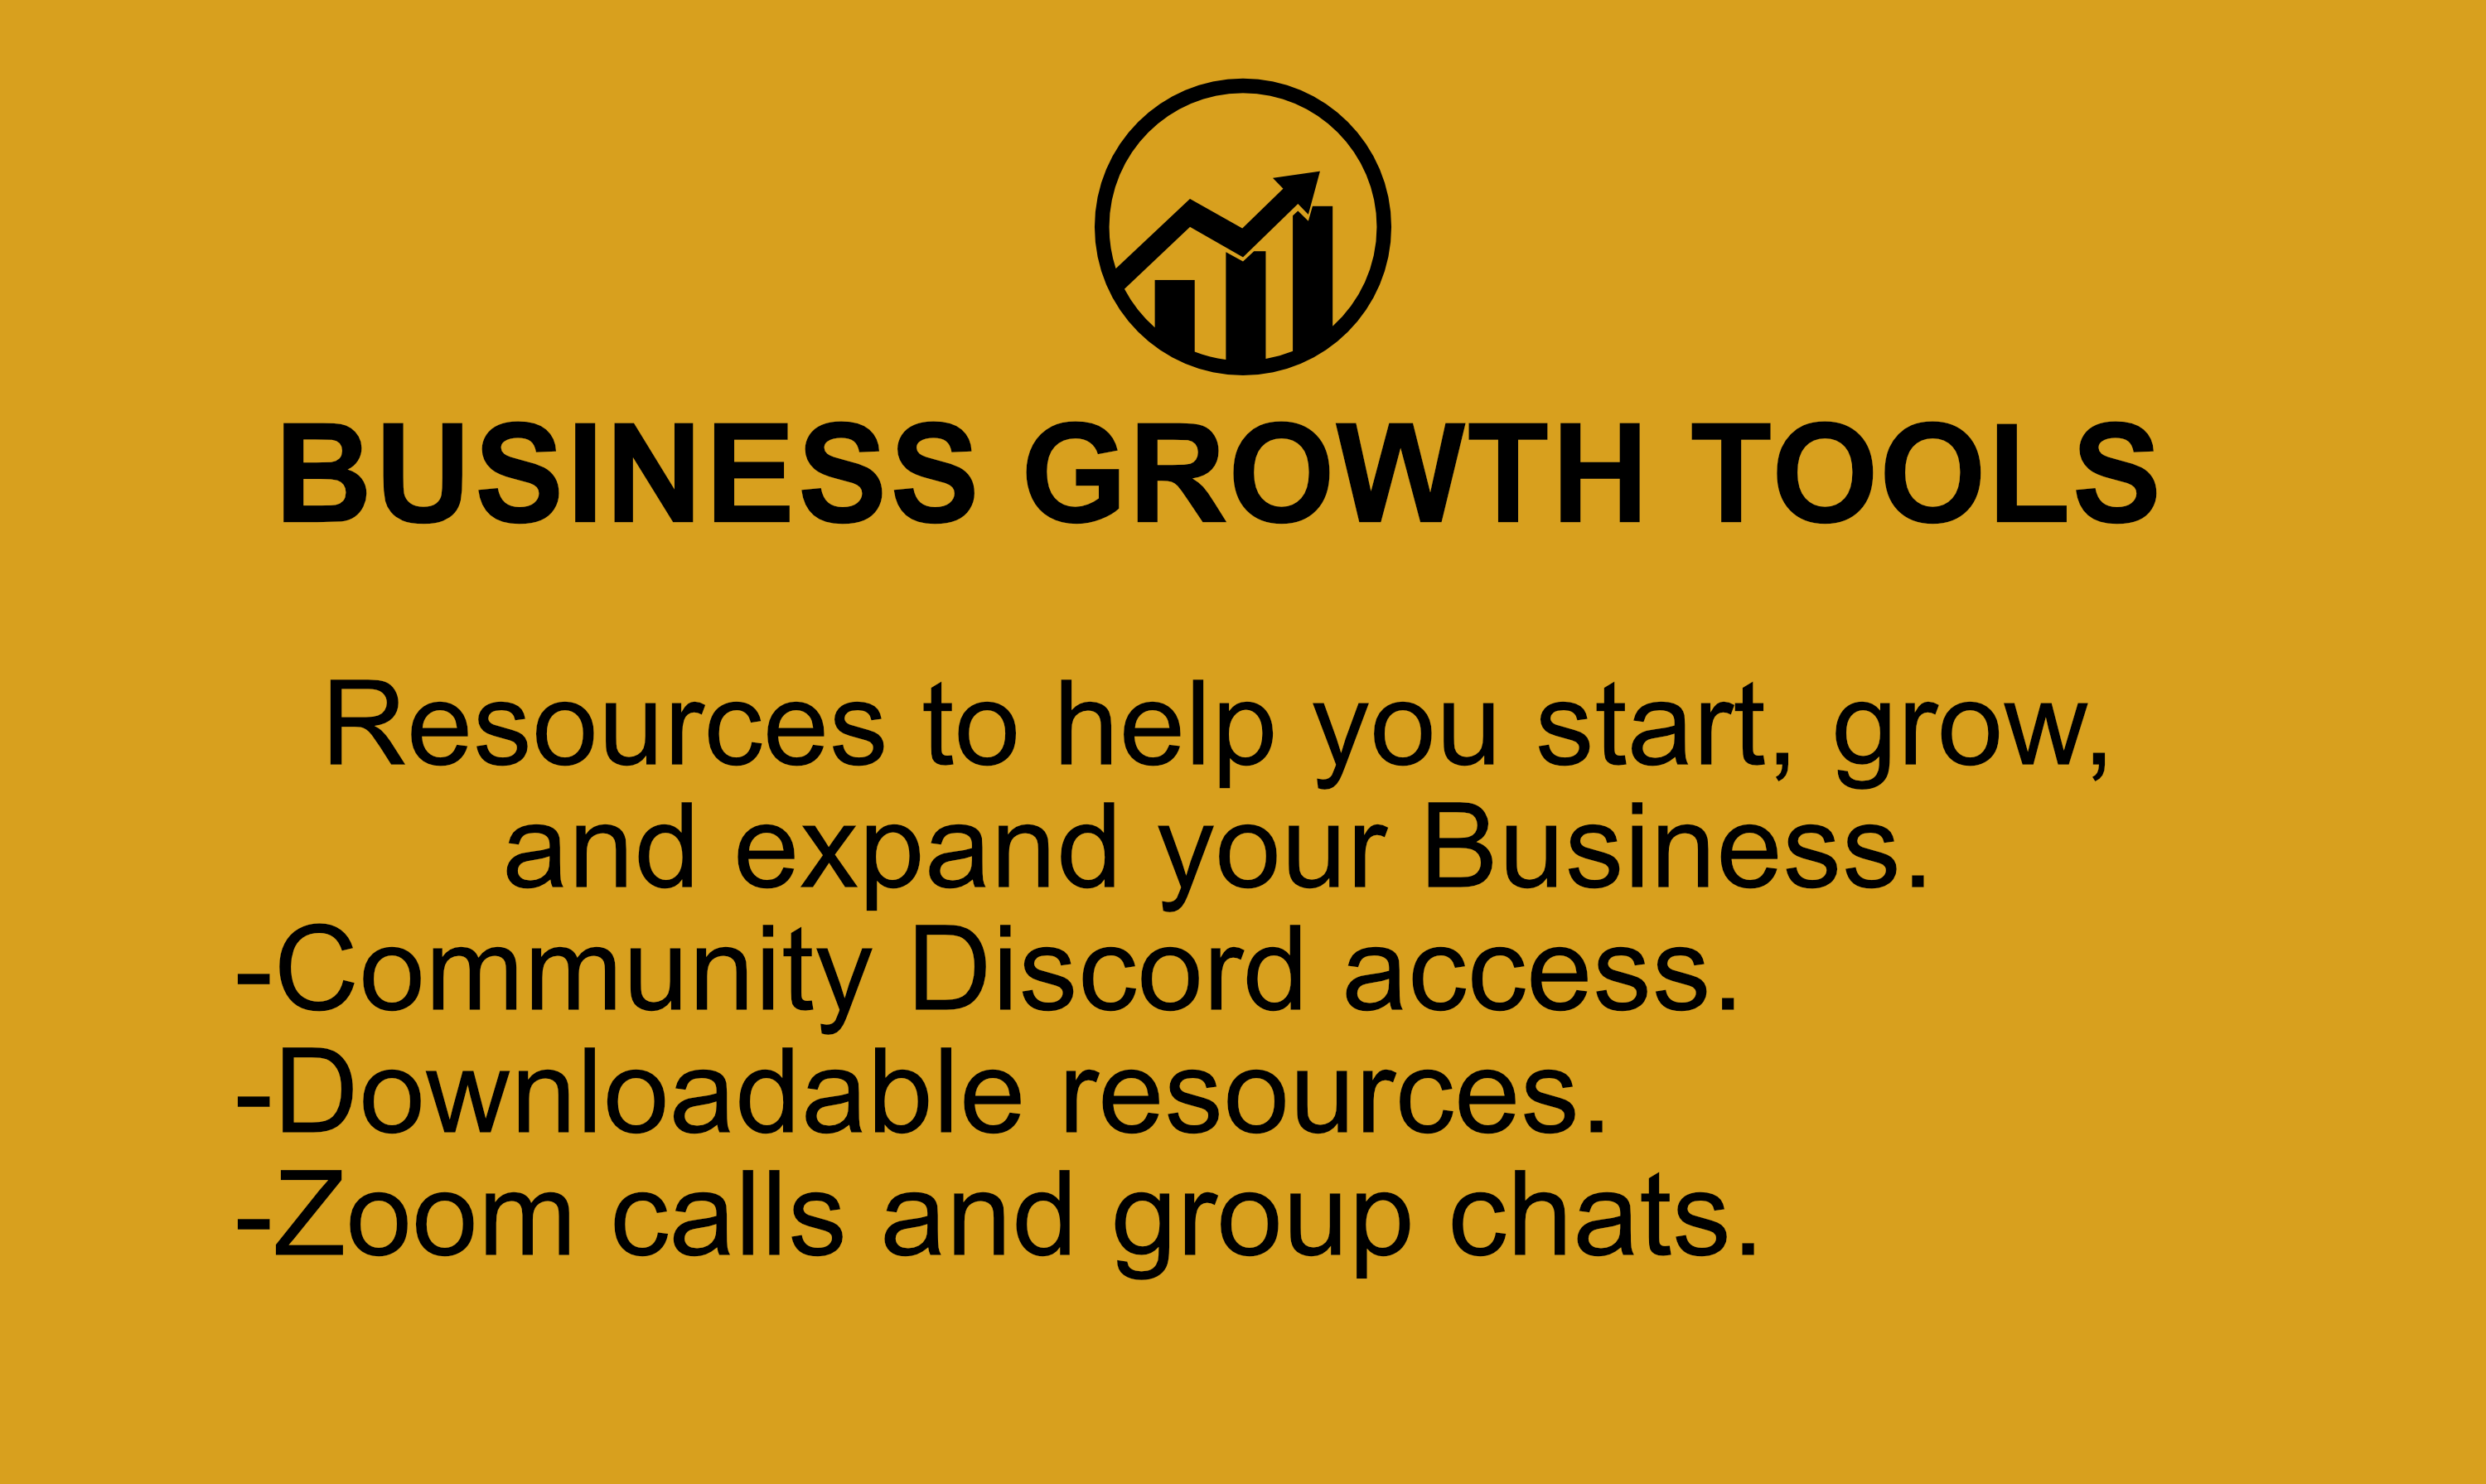 BUSINESS GROWTH TOOLS